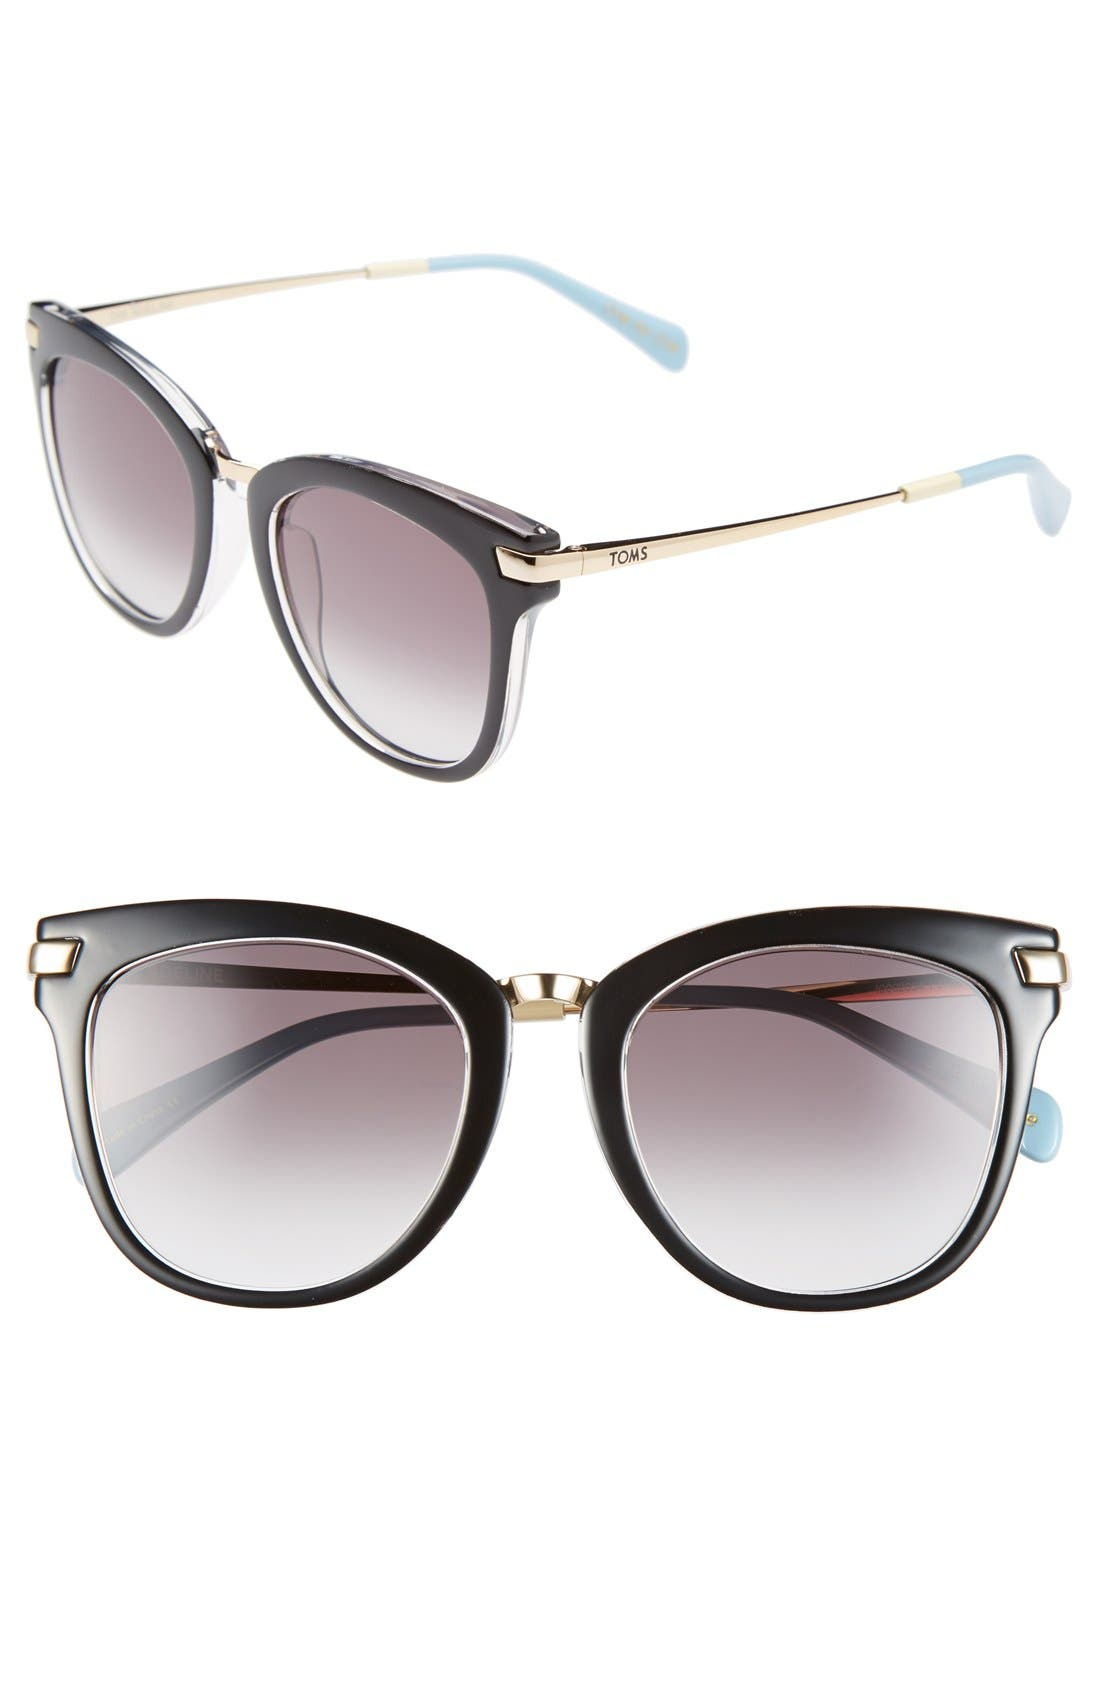 Main Image - TOMS 'Adeline' 51mm Sunglasses